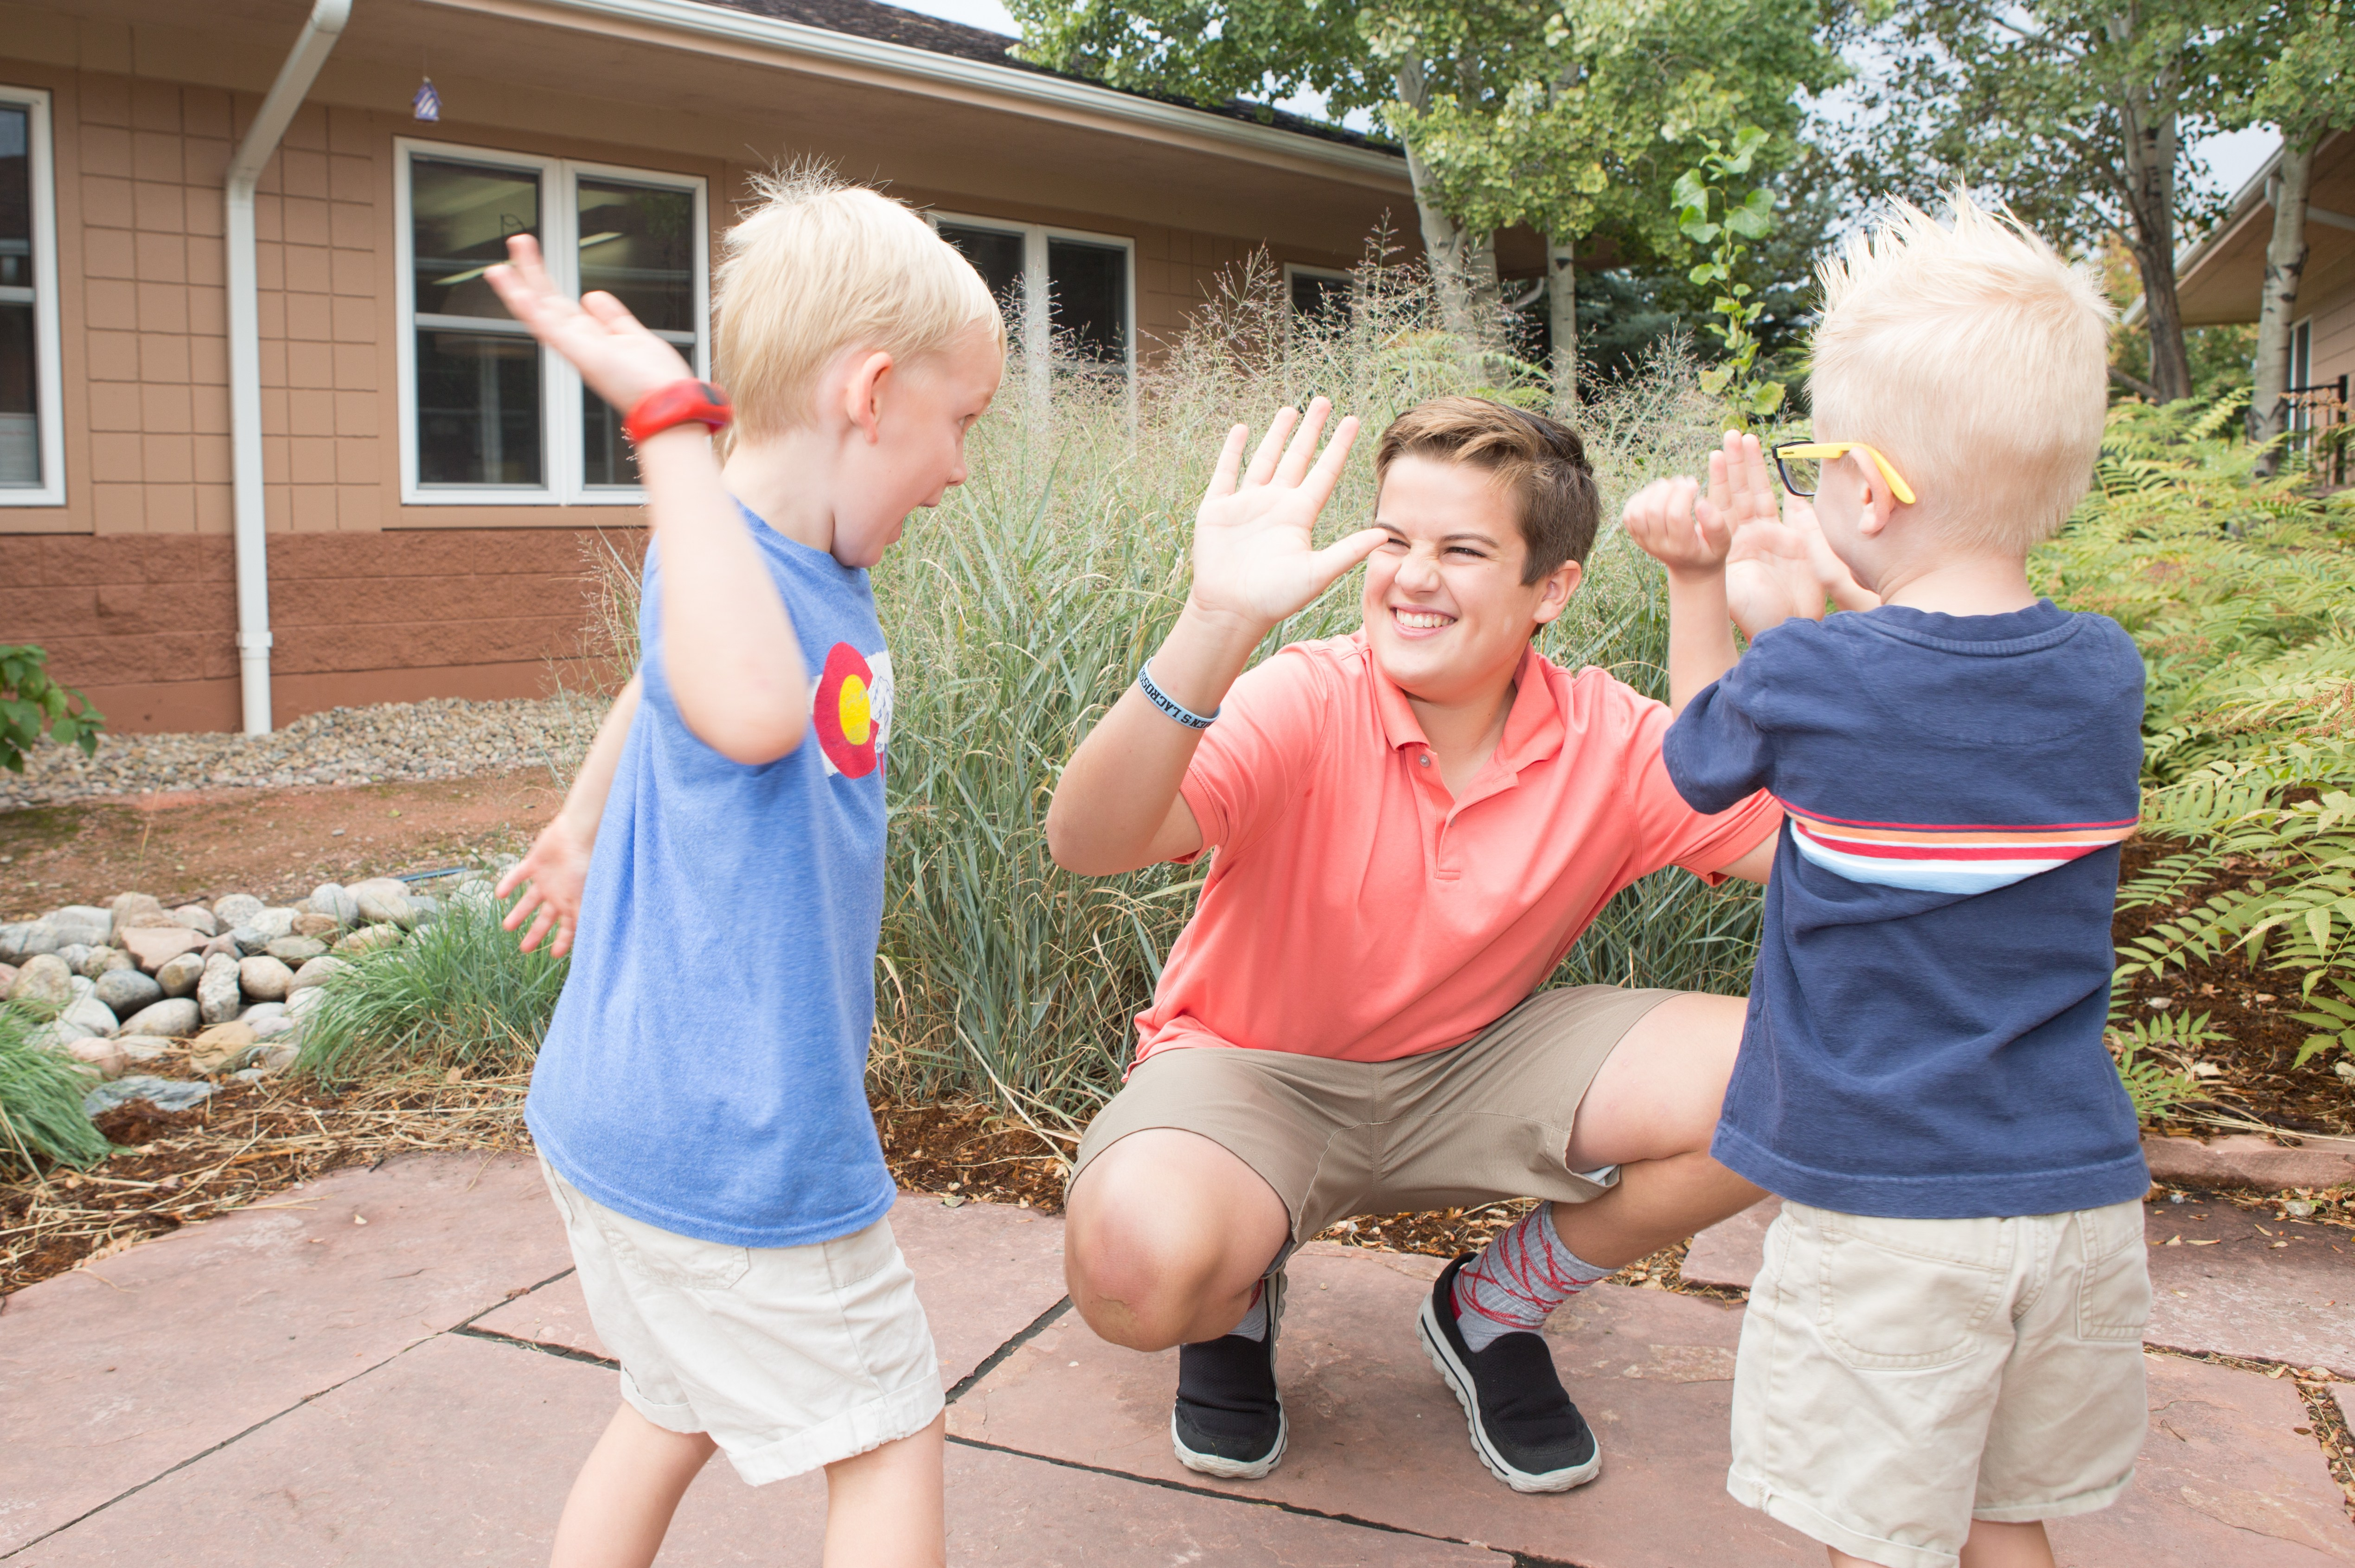 middle school boy is kneeling to give 2 preschool boys a high five